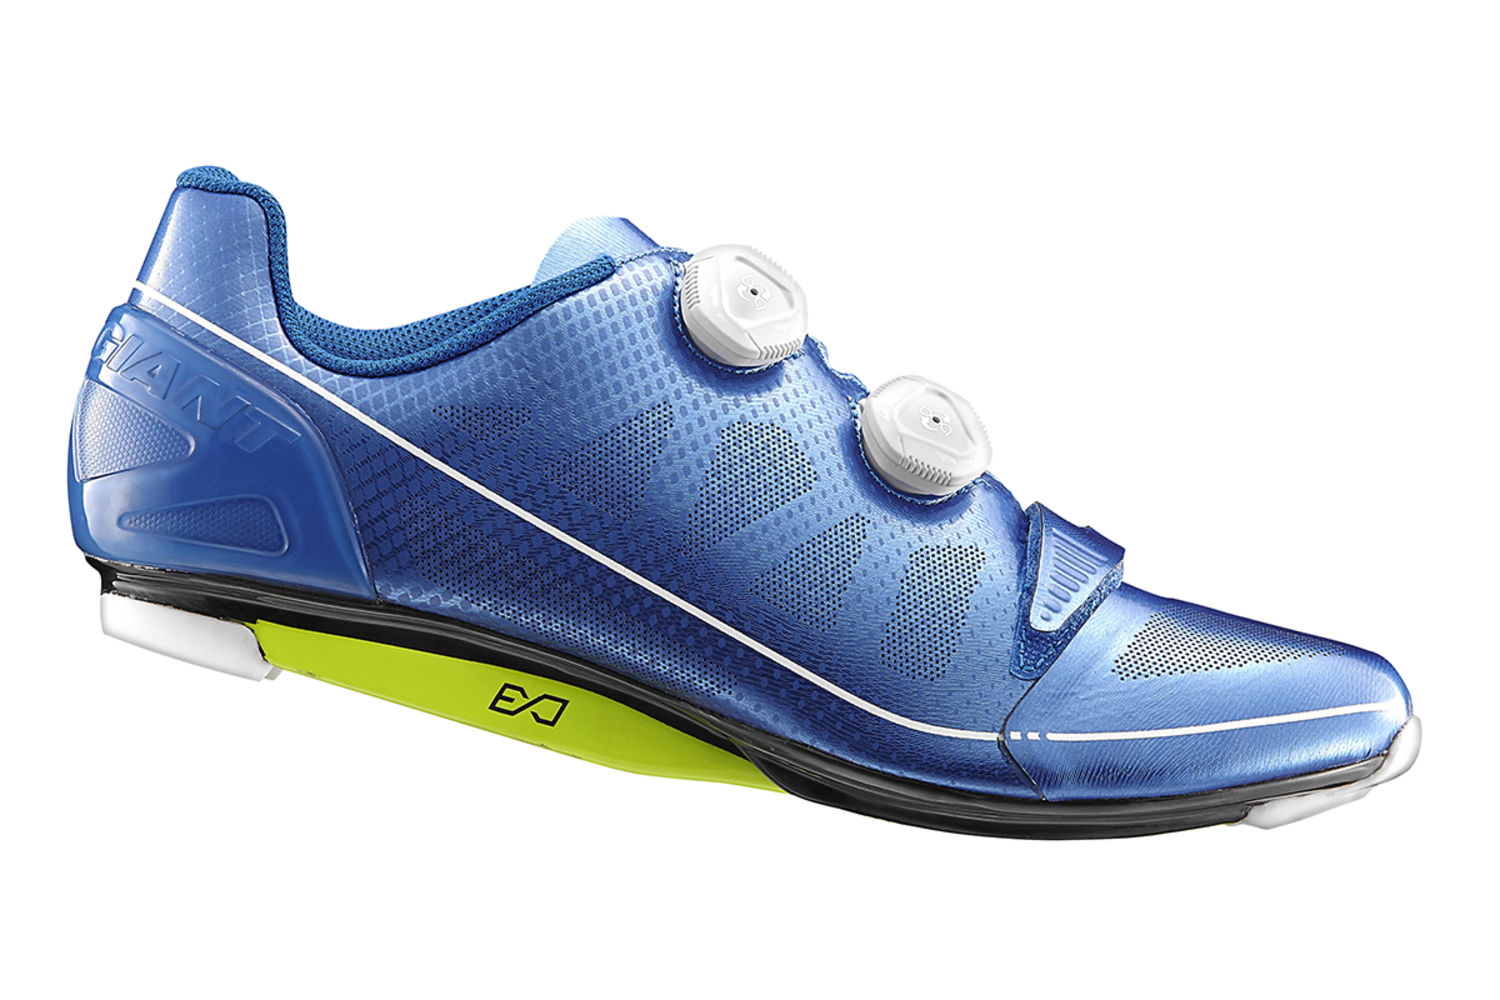 Surge Carbon Sole Mes Road Shoe Giant Bicycles United States